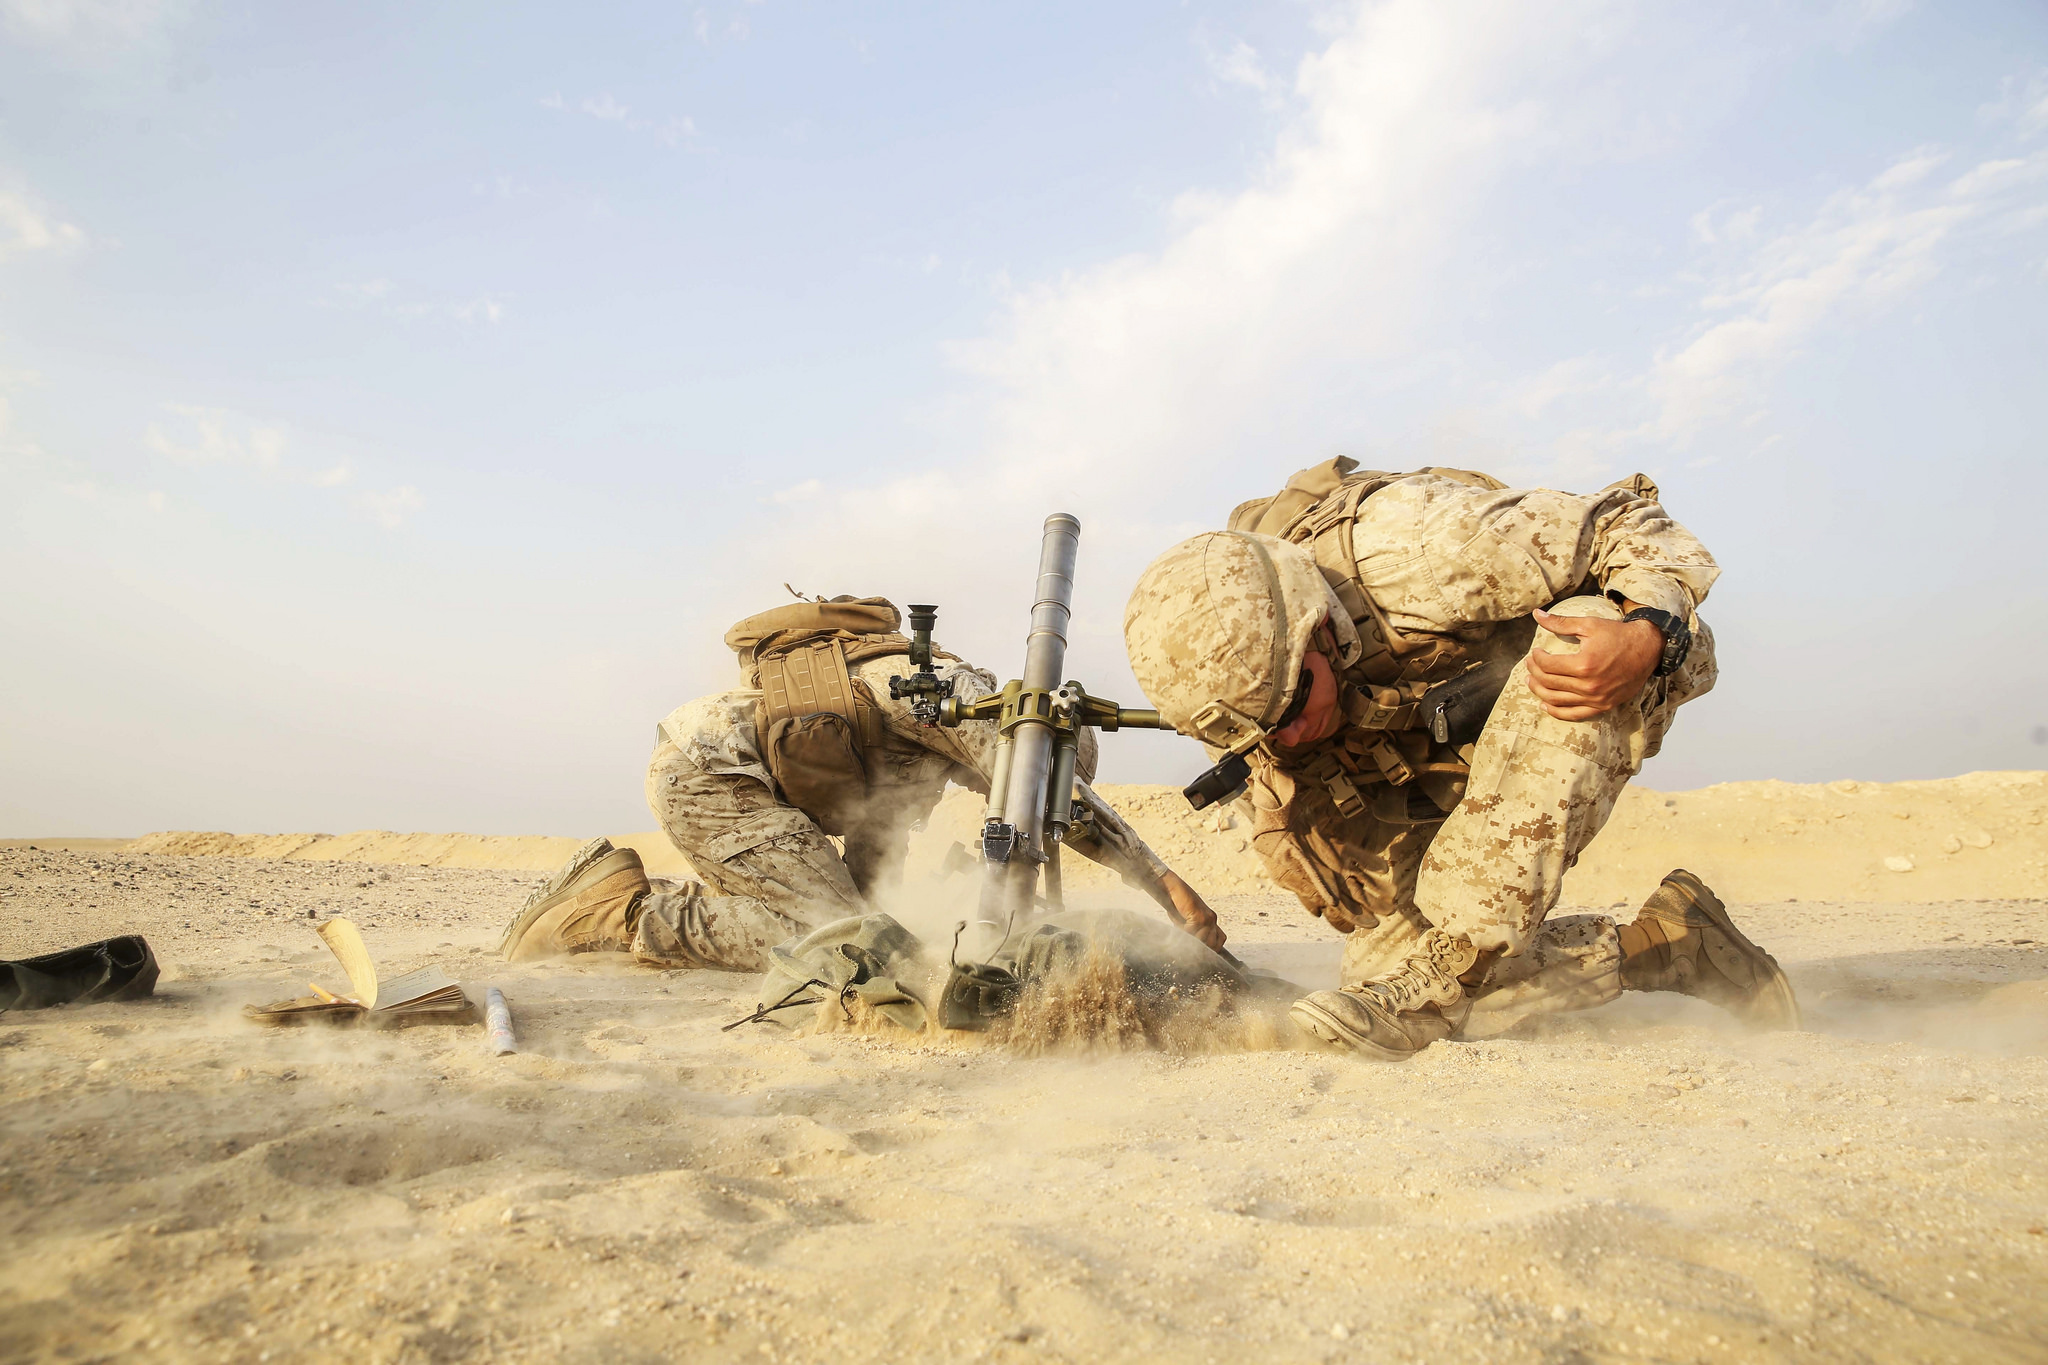 Marines with Battalion Landing Team, 1st Battalion, 5th Marine Regiment, 15th Marine Expeditionary Unit fire a M224 60 mm mortar system. (Cpl. Timothy Valero/Marine Corps)